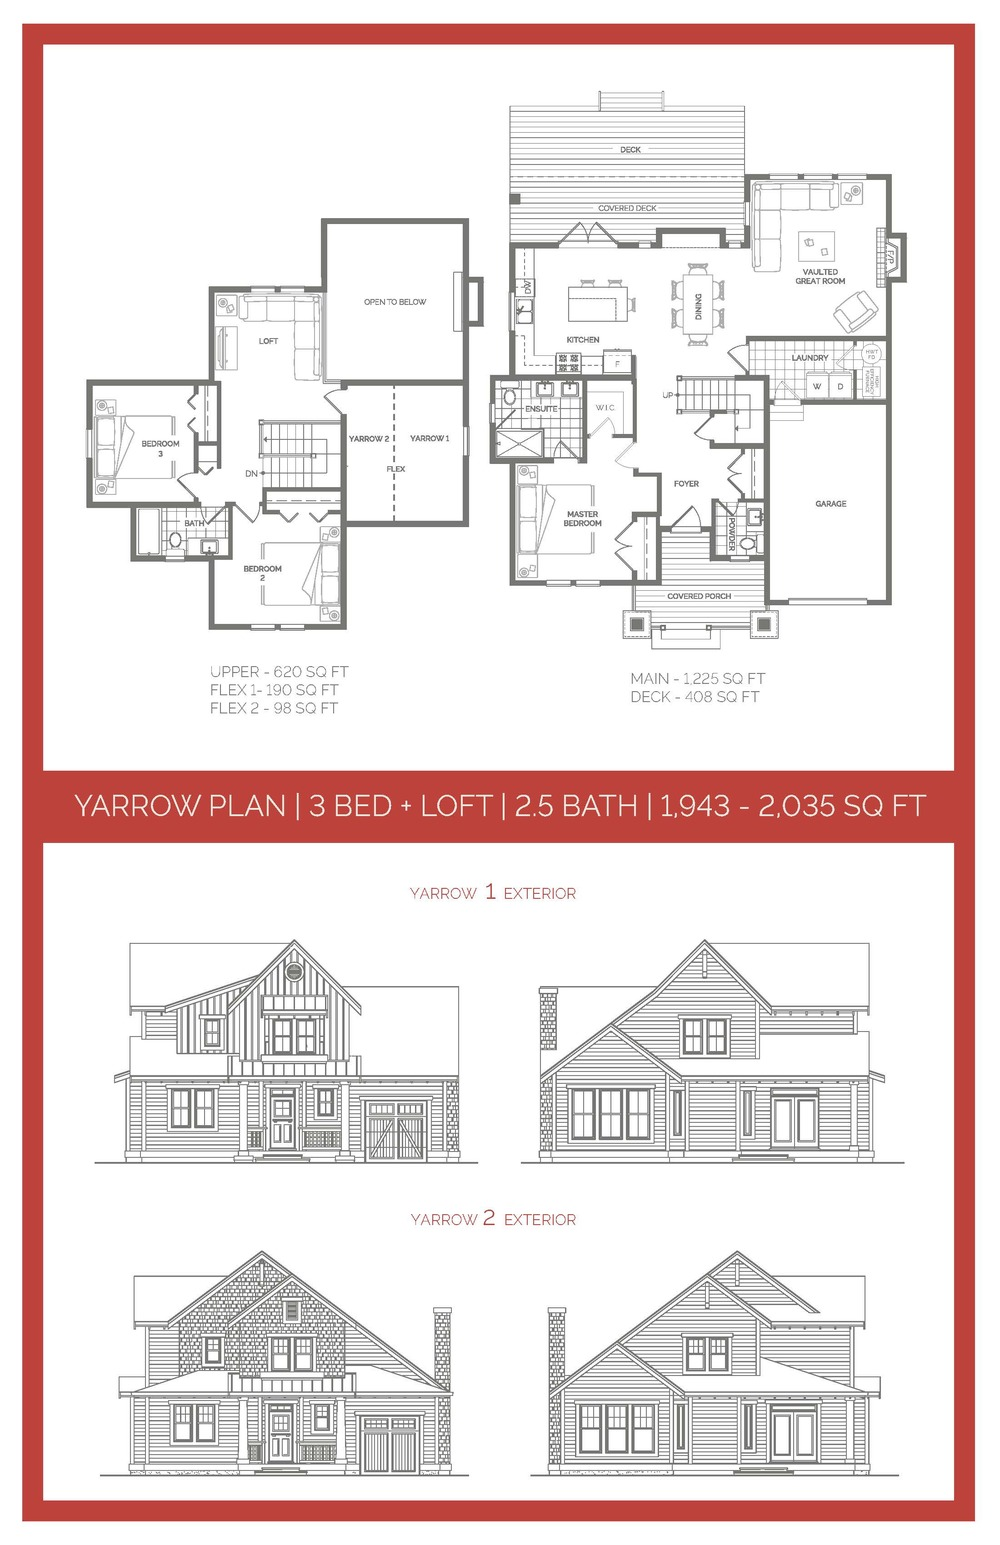 YARROW FLOORPLAN